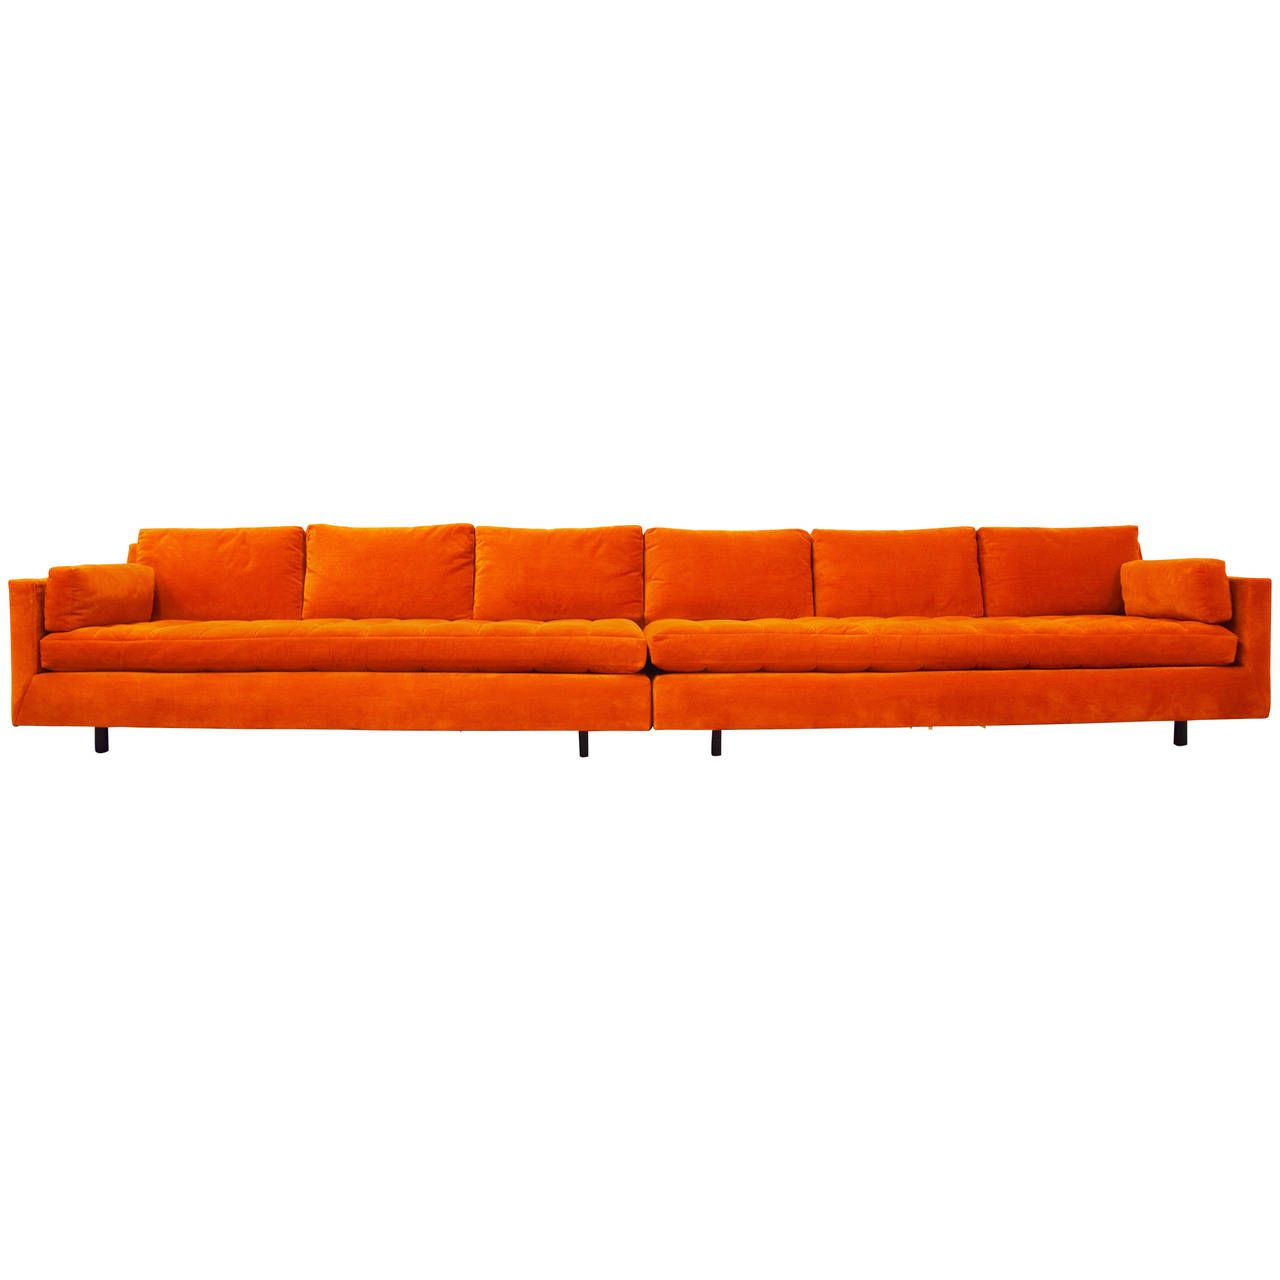 Sofa Sale Harveys Long Tufted Harvey Probber Sofa 1stdibs Fan Faves Sofa